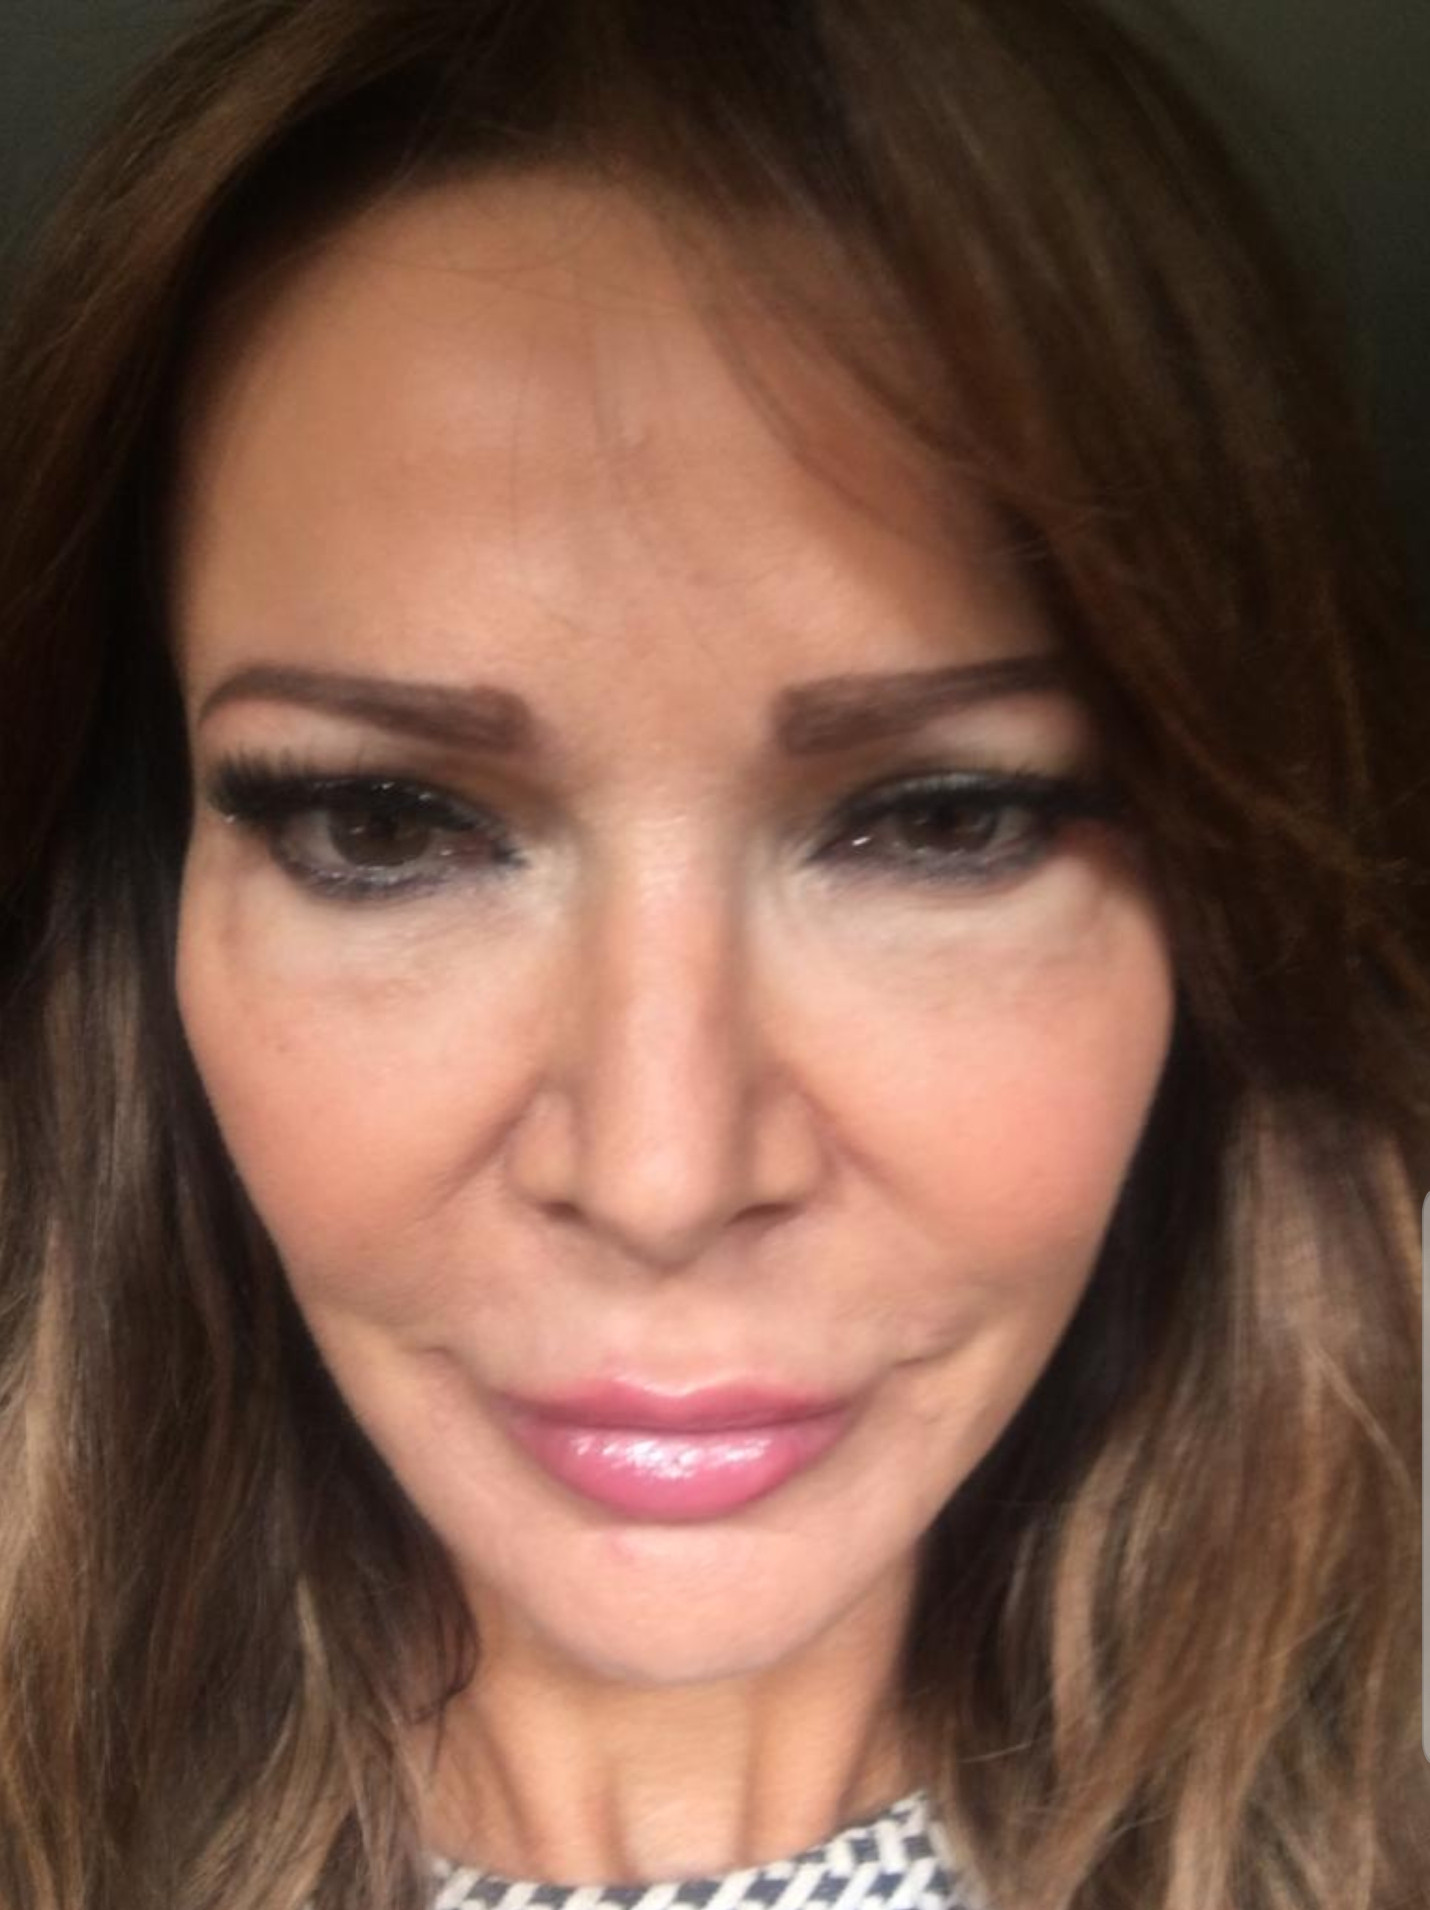 Lizzie Cundy was left with swollen under eyes and blurred vision after having filler injected into her eye sockets